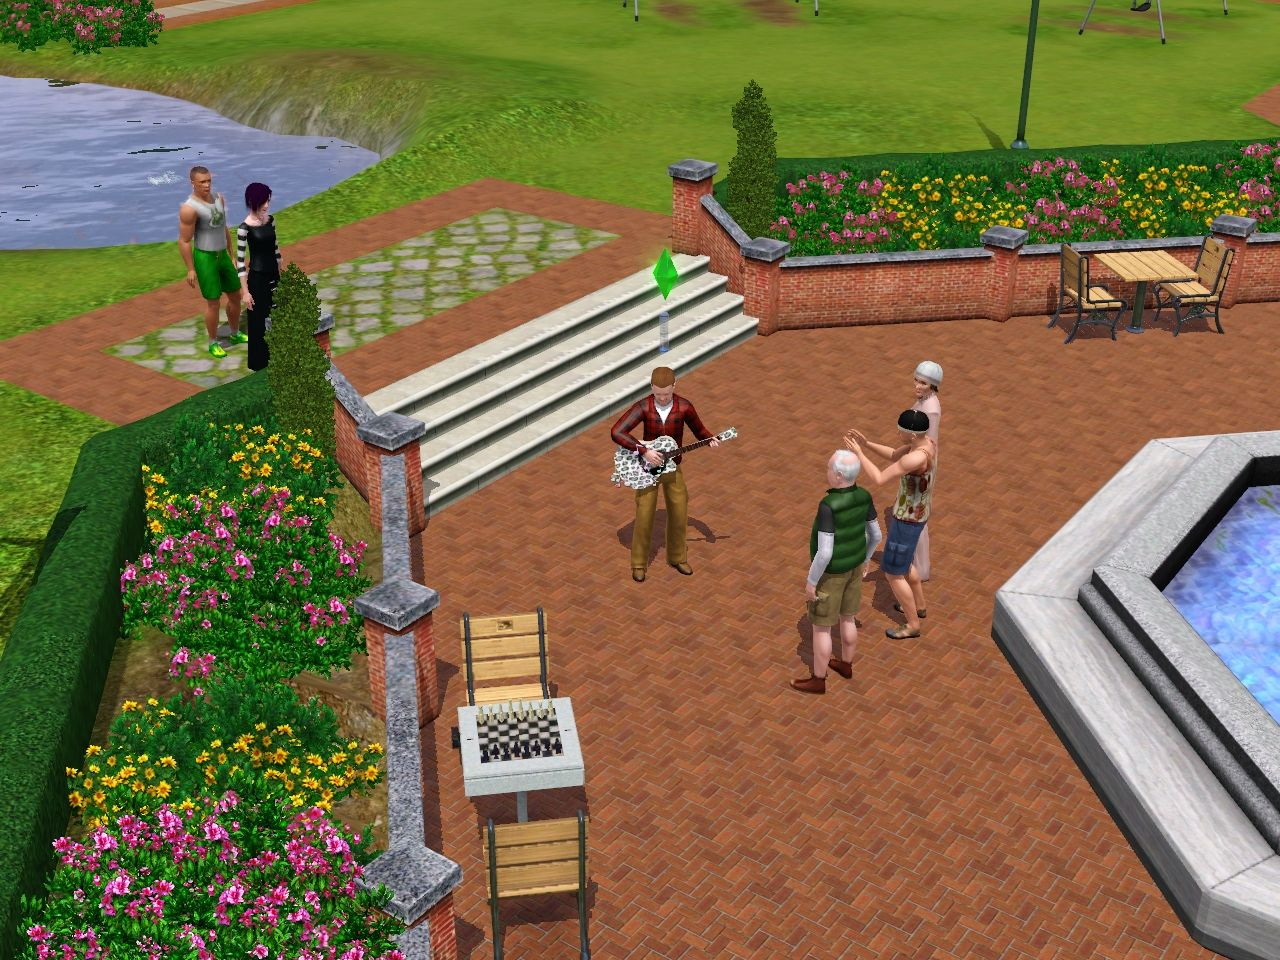 The Sims 3 Windows Entertaining some random people in the park to get my skill up.